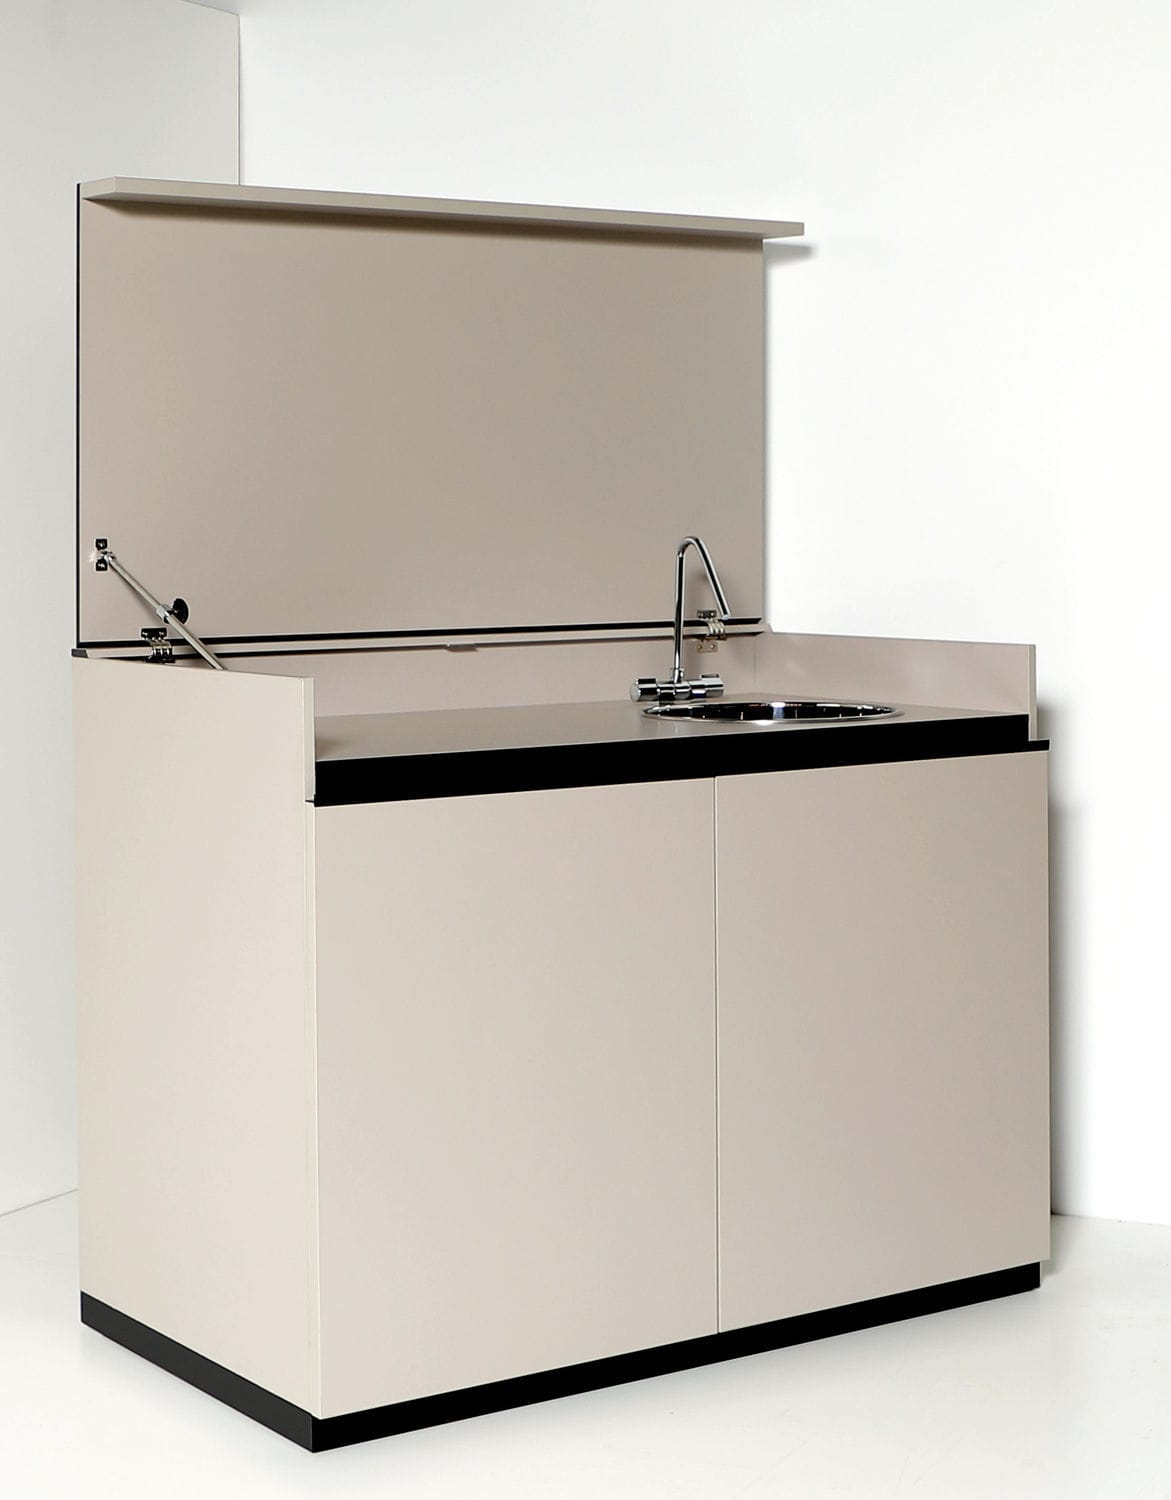 Prime Aery Evolution Stainless Steel Kitchen Sink Cabinet For Gardens With Legs By Indaf Sas Archiexpo Download Free Architecture Designs Scobabritishbridgeorg